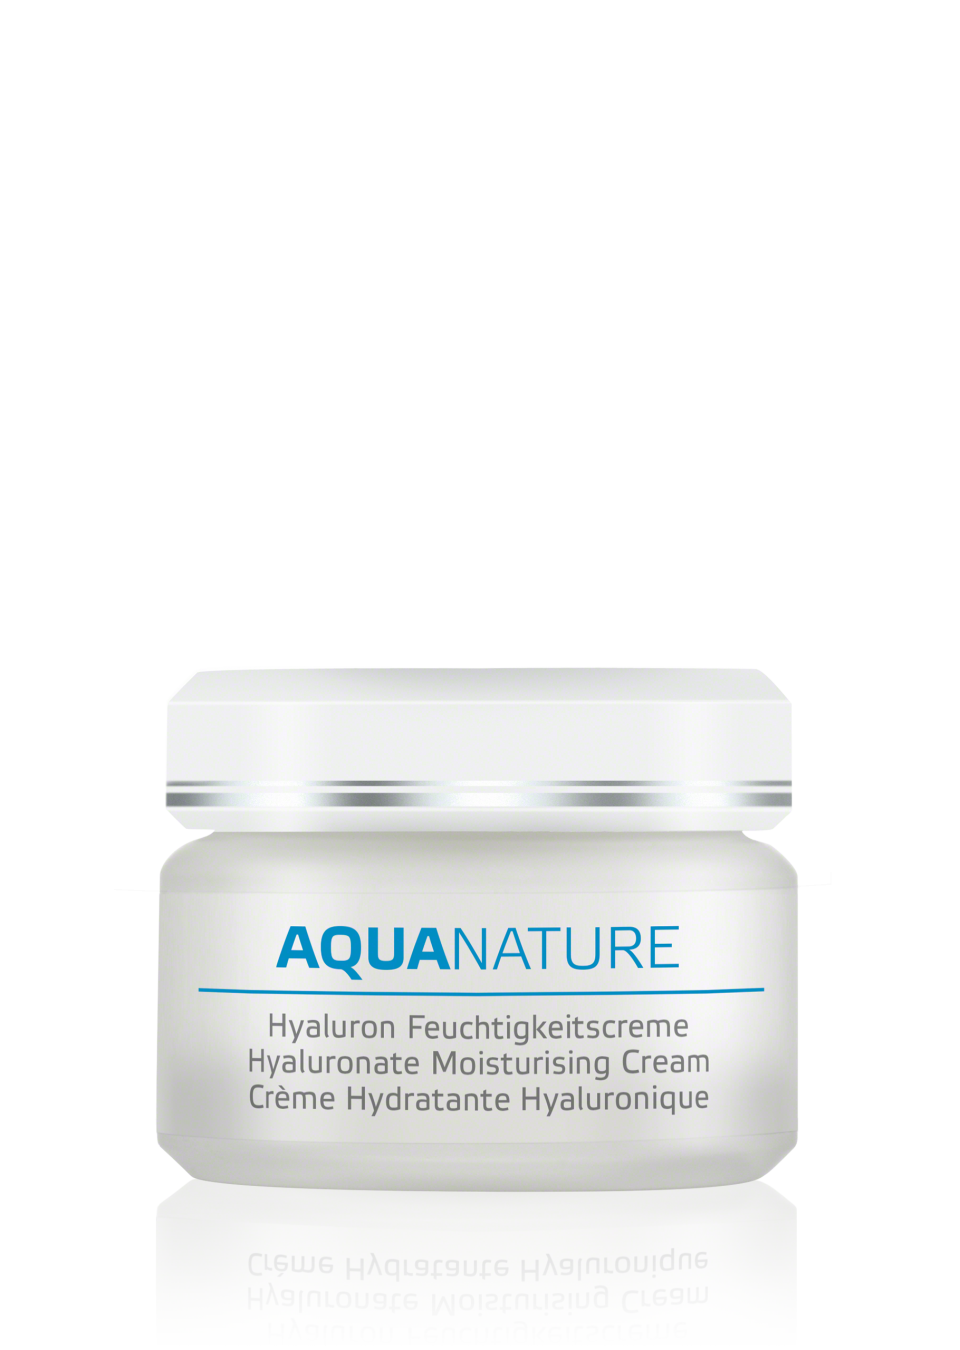 AQUANATURA HYALURONATE MOISTURIZING CREAM